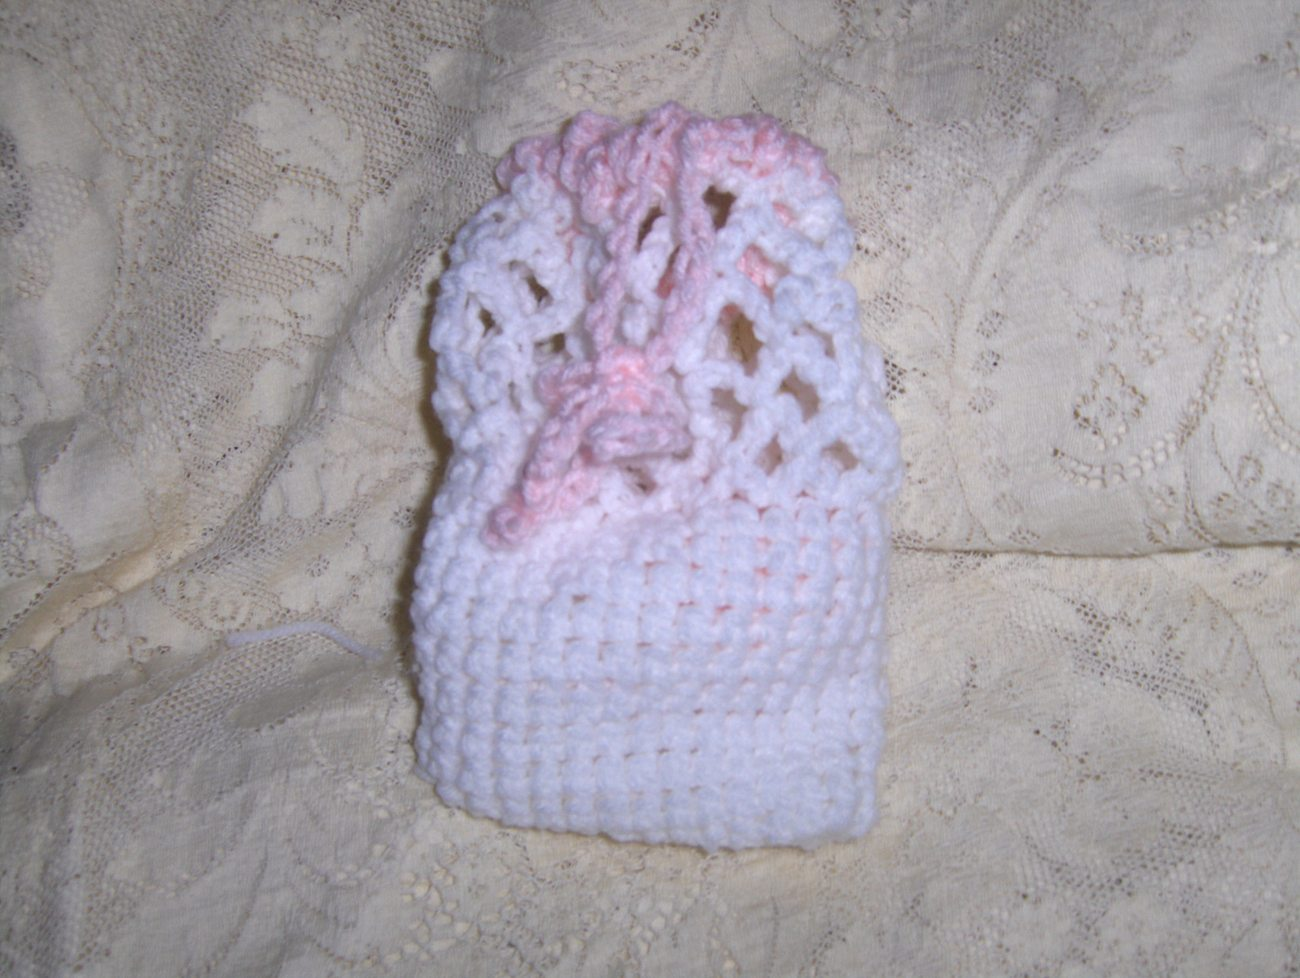 Handmade Lattice White and Pink Crocheted Childs Purse/Doll Bassinet